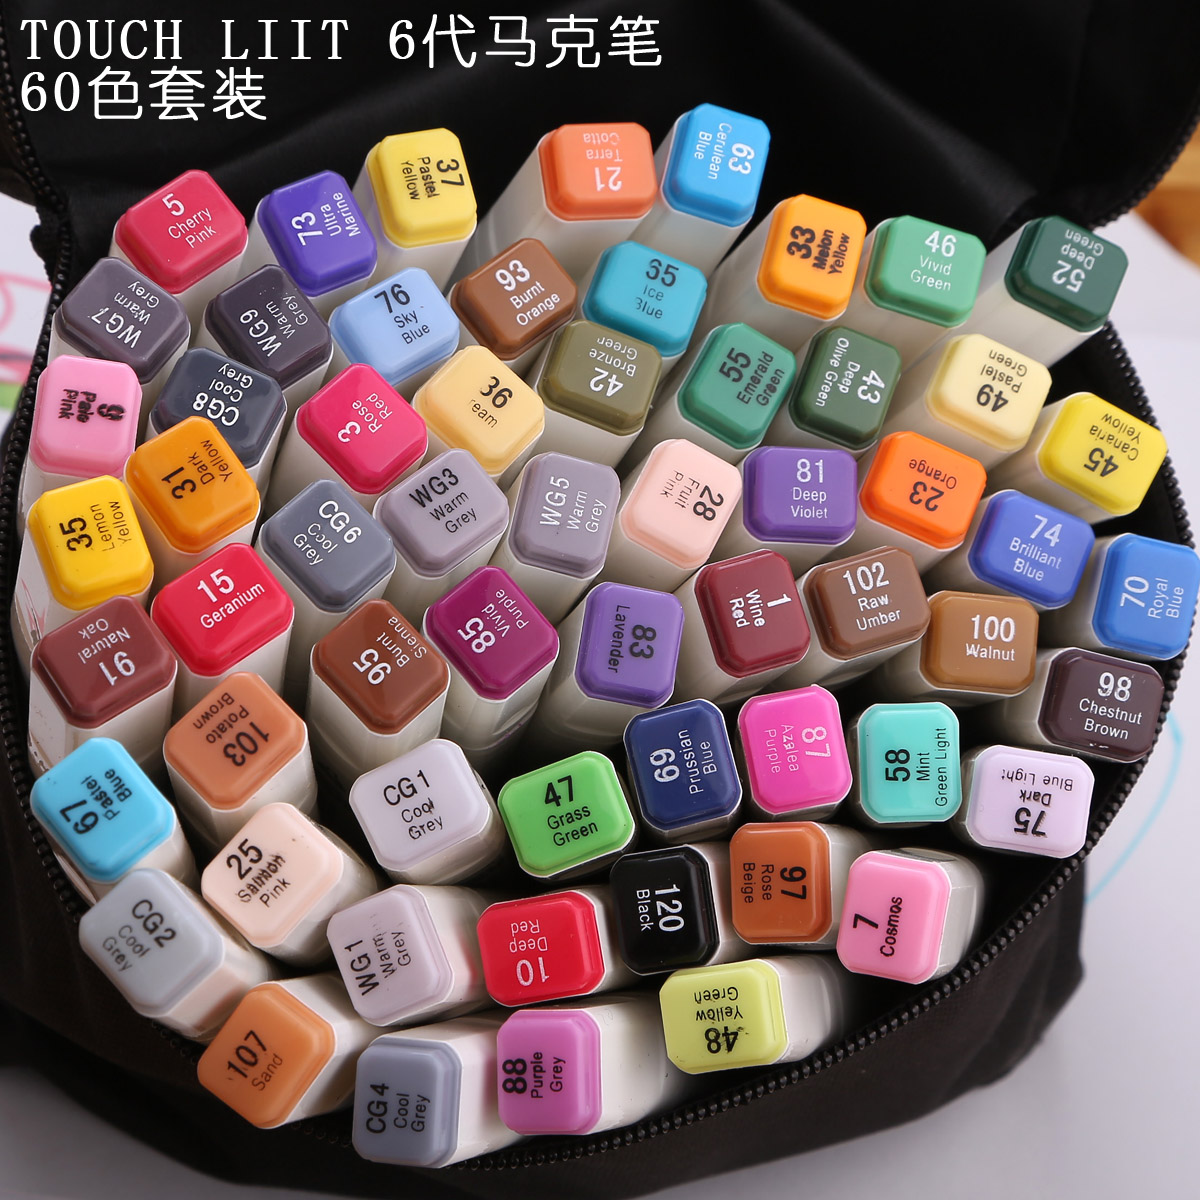 Touch liit6 generation headed alcohol oily marker pen marks 60 color 40 color 80 color suit painted comic sixth generation